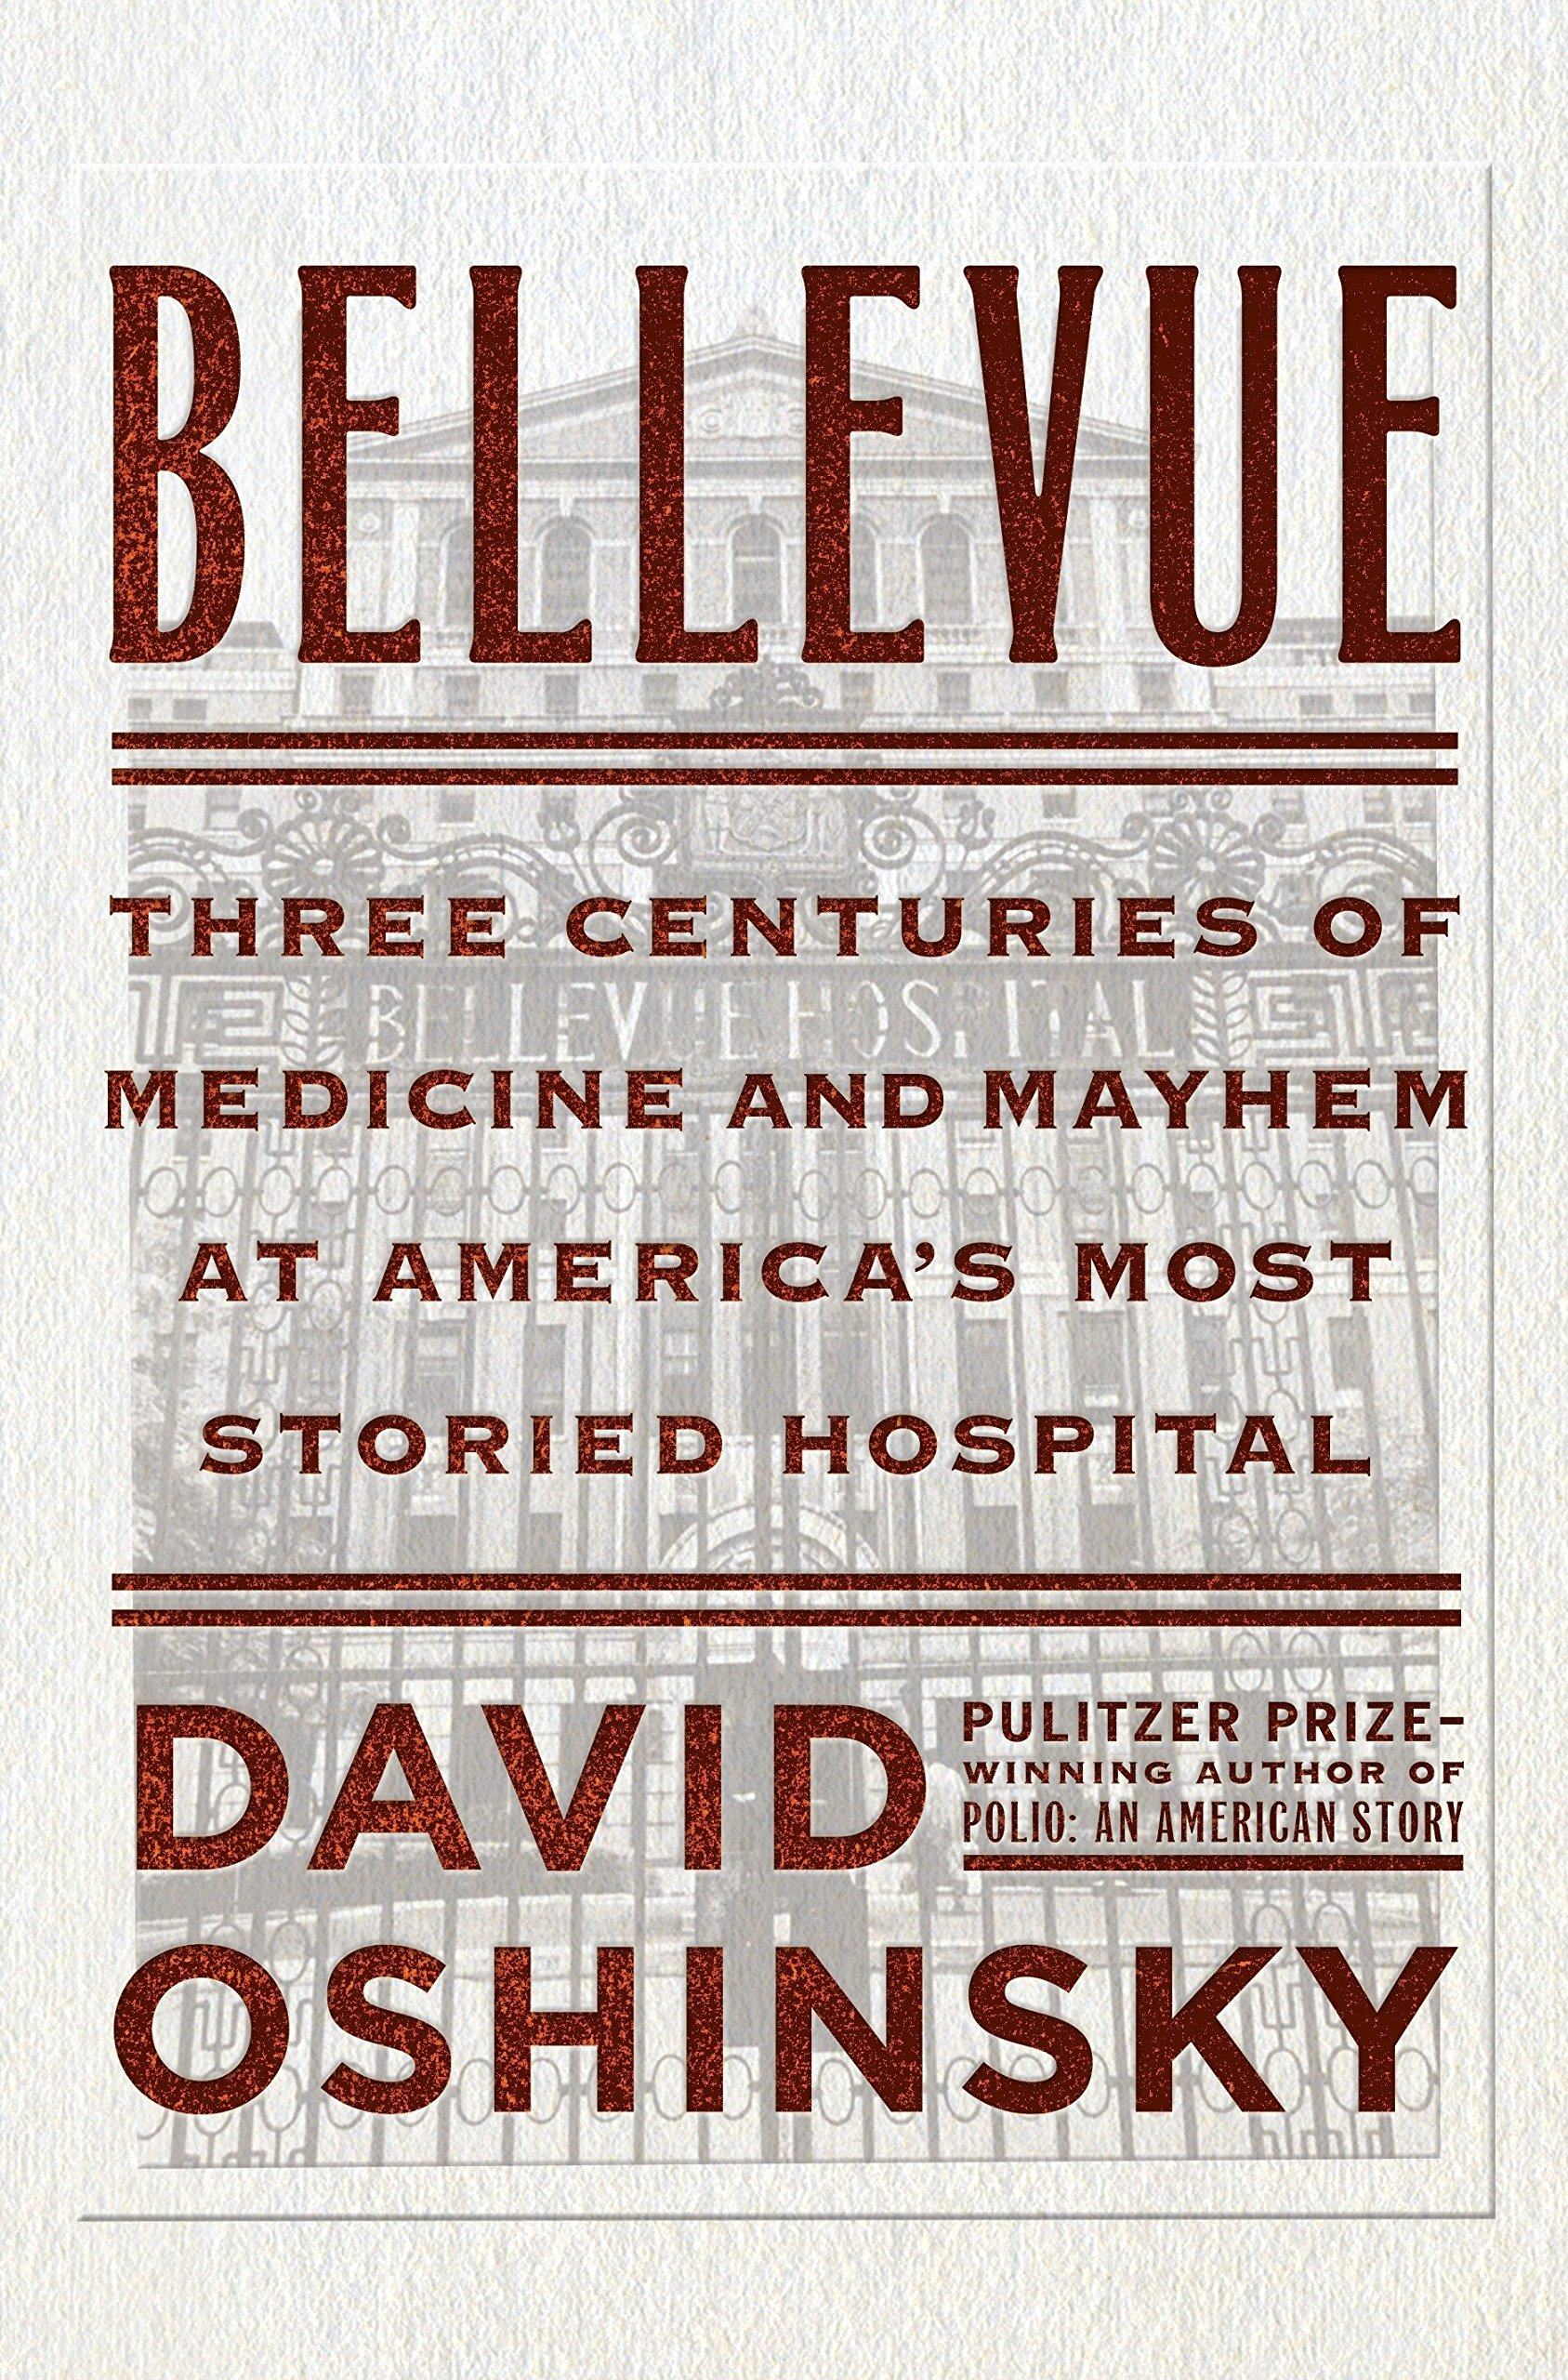 Image result for bellevue three centuries of medicine and mayhem at america's most storied hospital